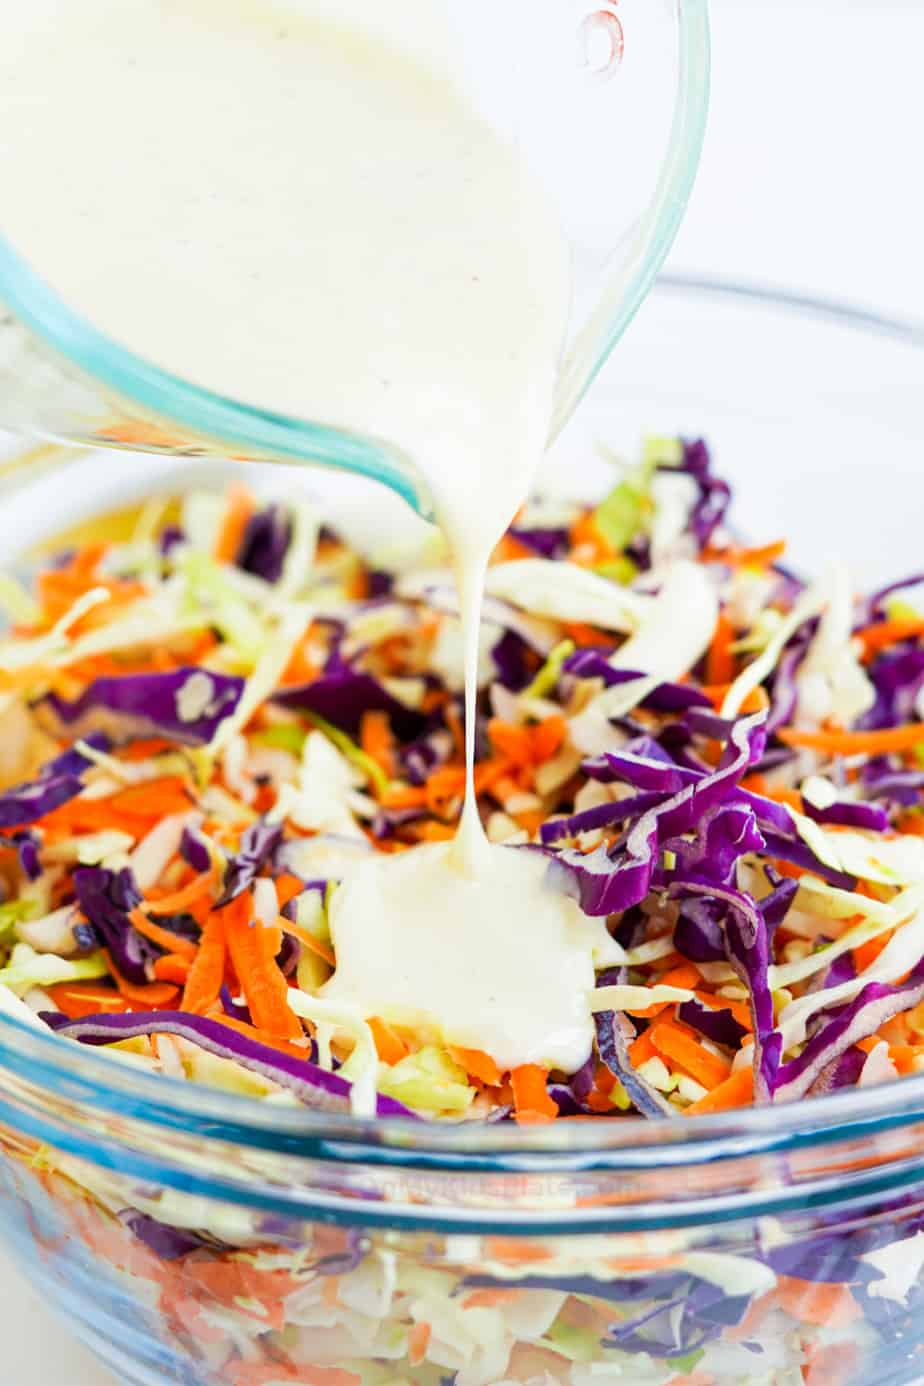 Pouring dressing over cabbage and carrot mixture in a clear bowl from the side.